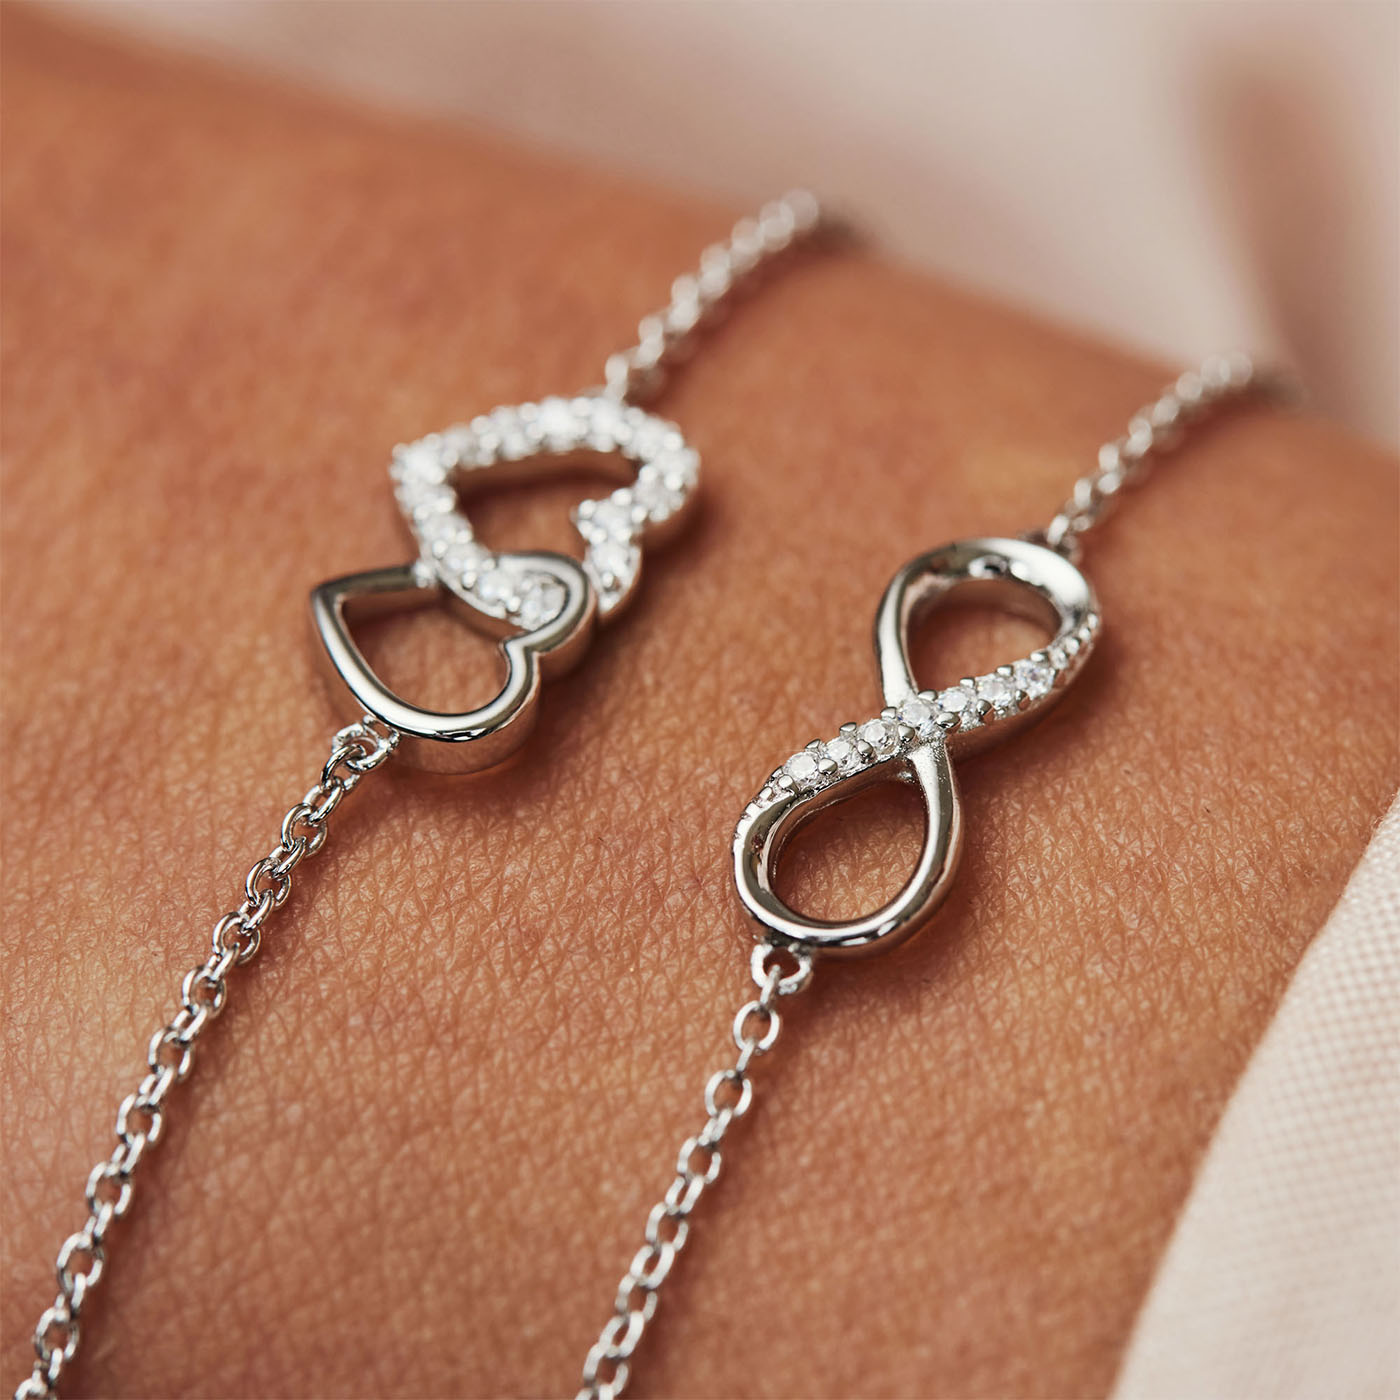 Selected Jewels Julie Emilie bracciale infinito in argento sterling 925